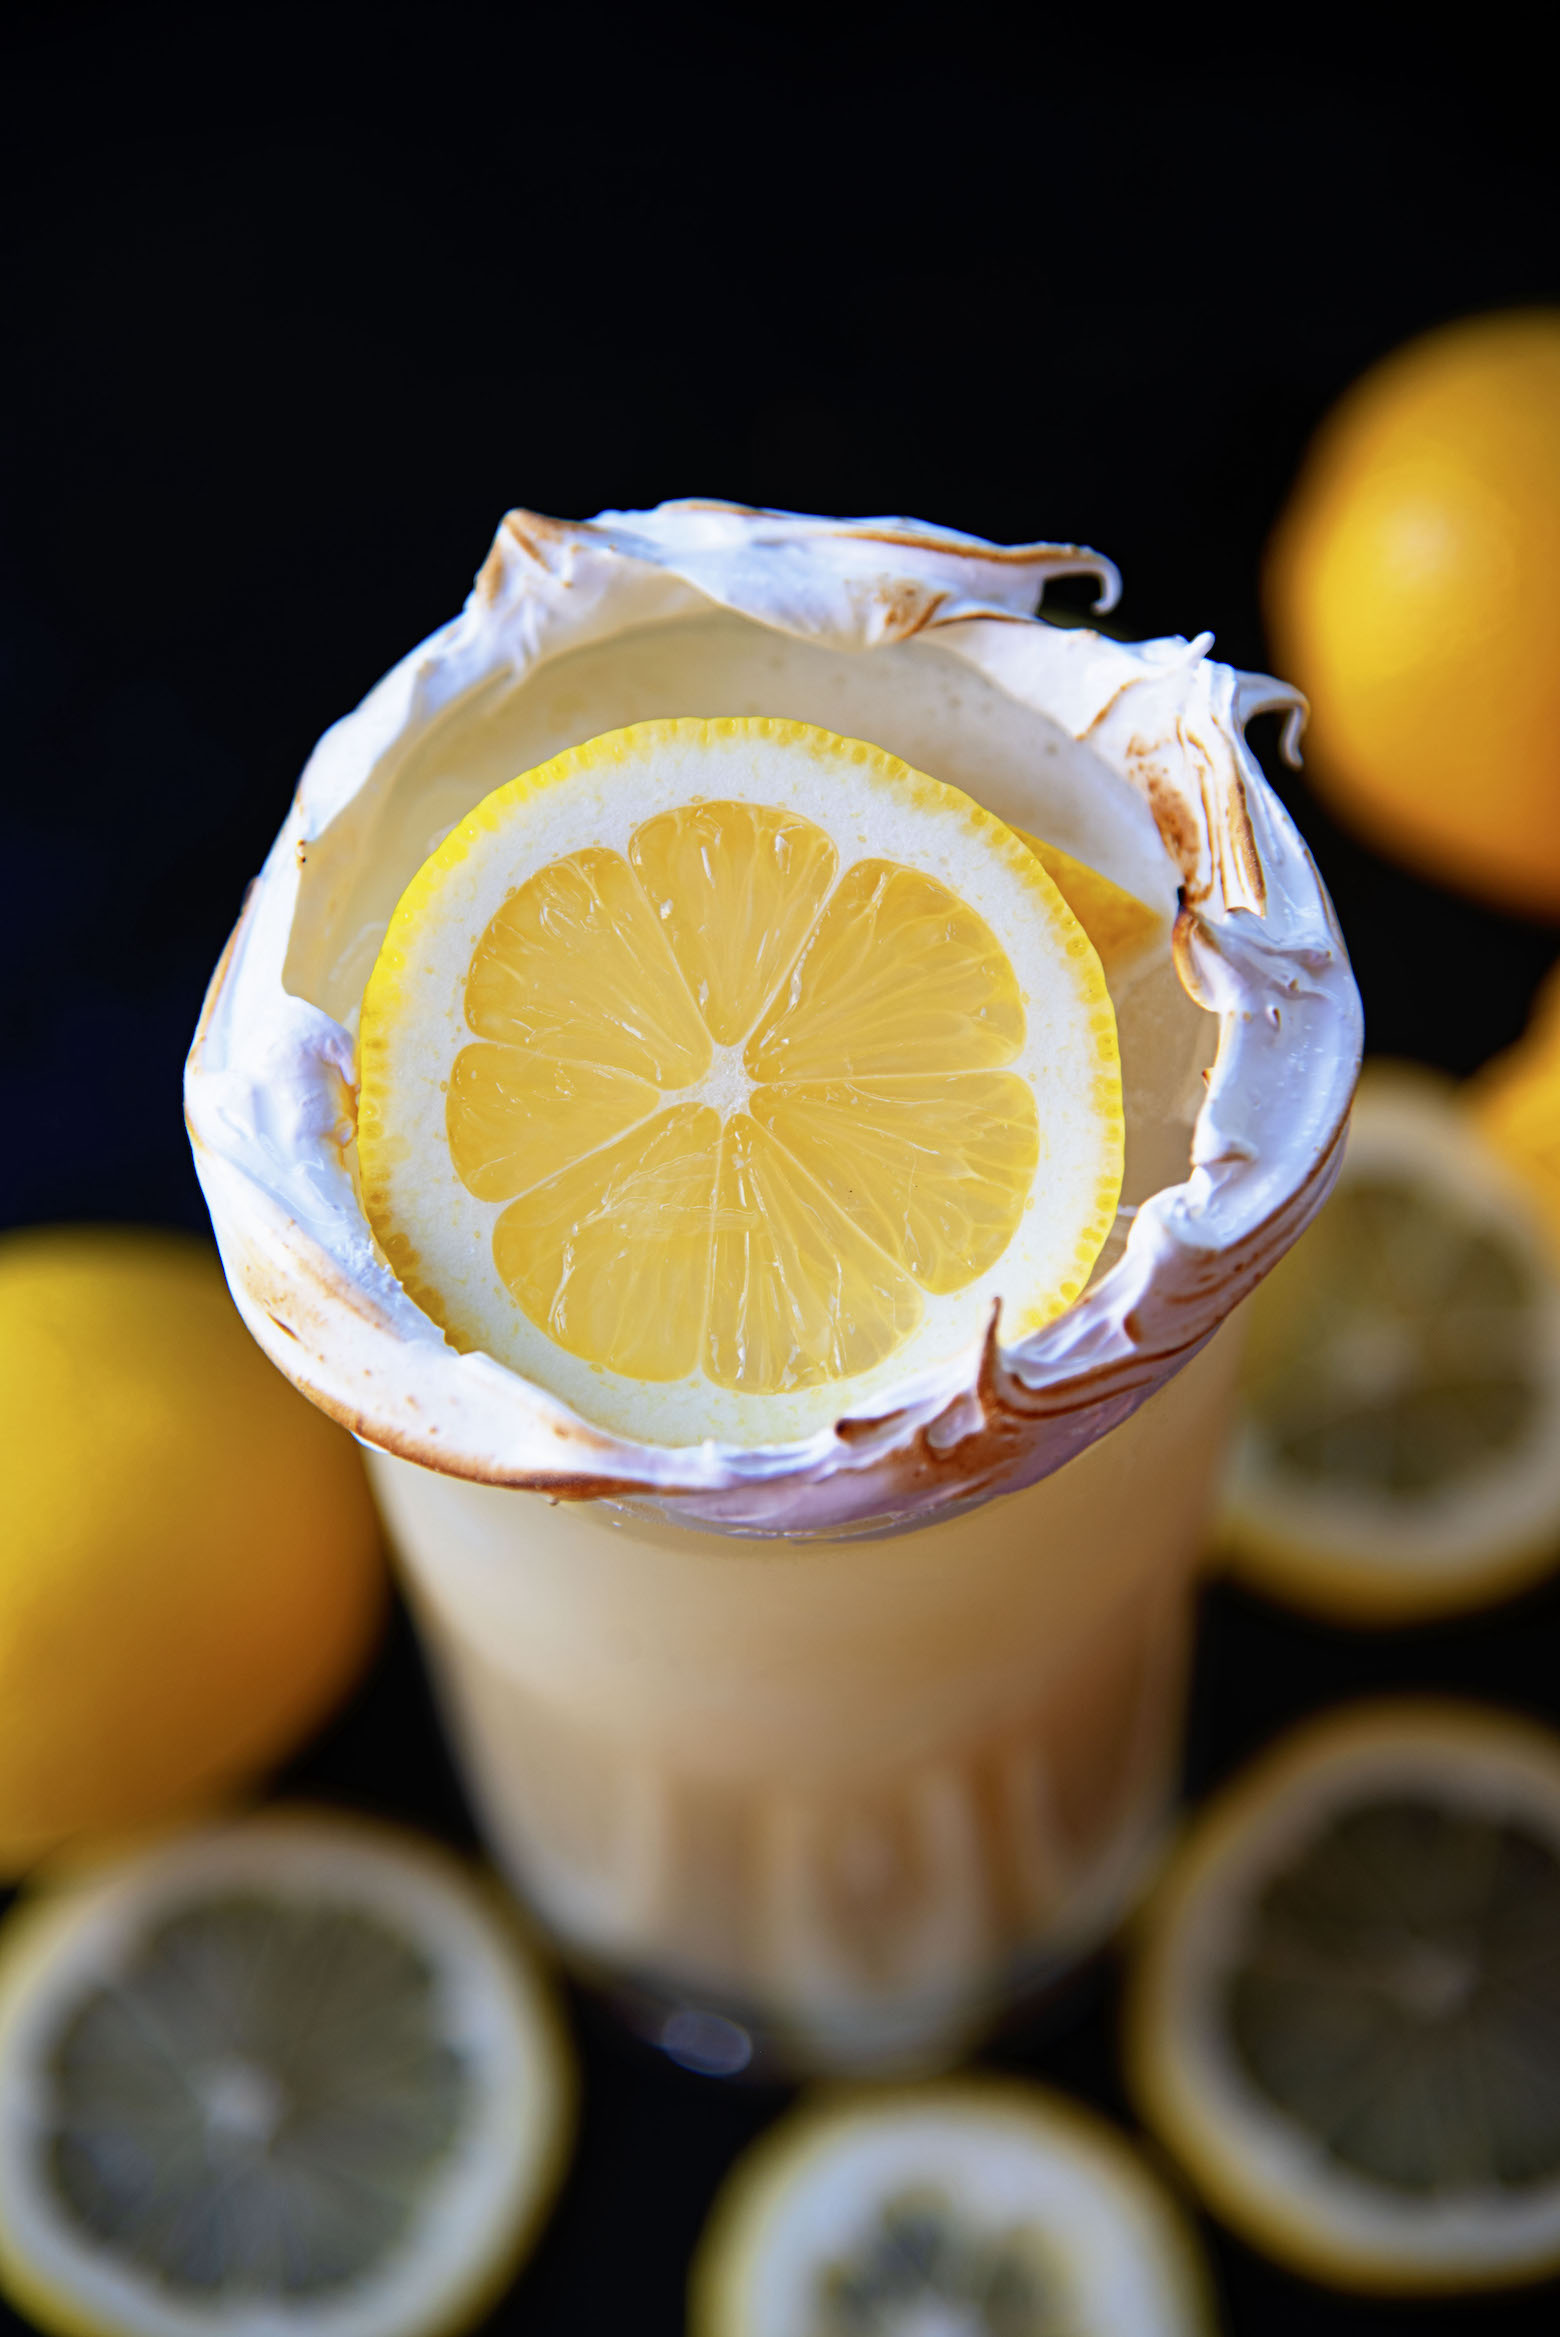 Overhead shot of cocktail with an up close shot of the lemon and meringue around the glass.